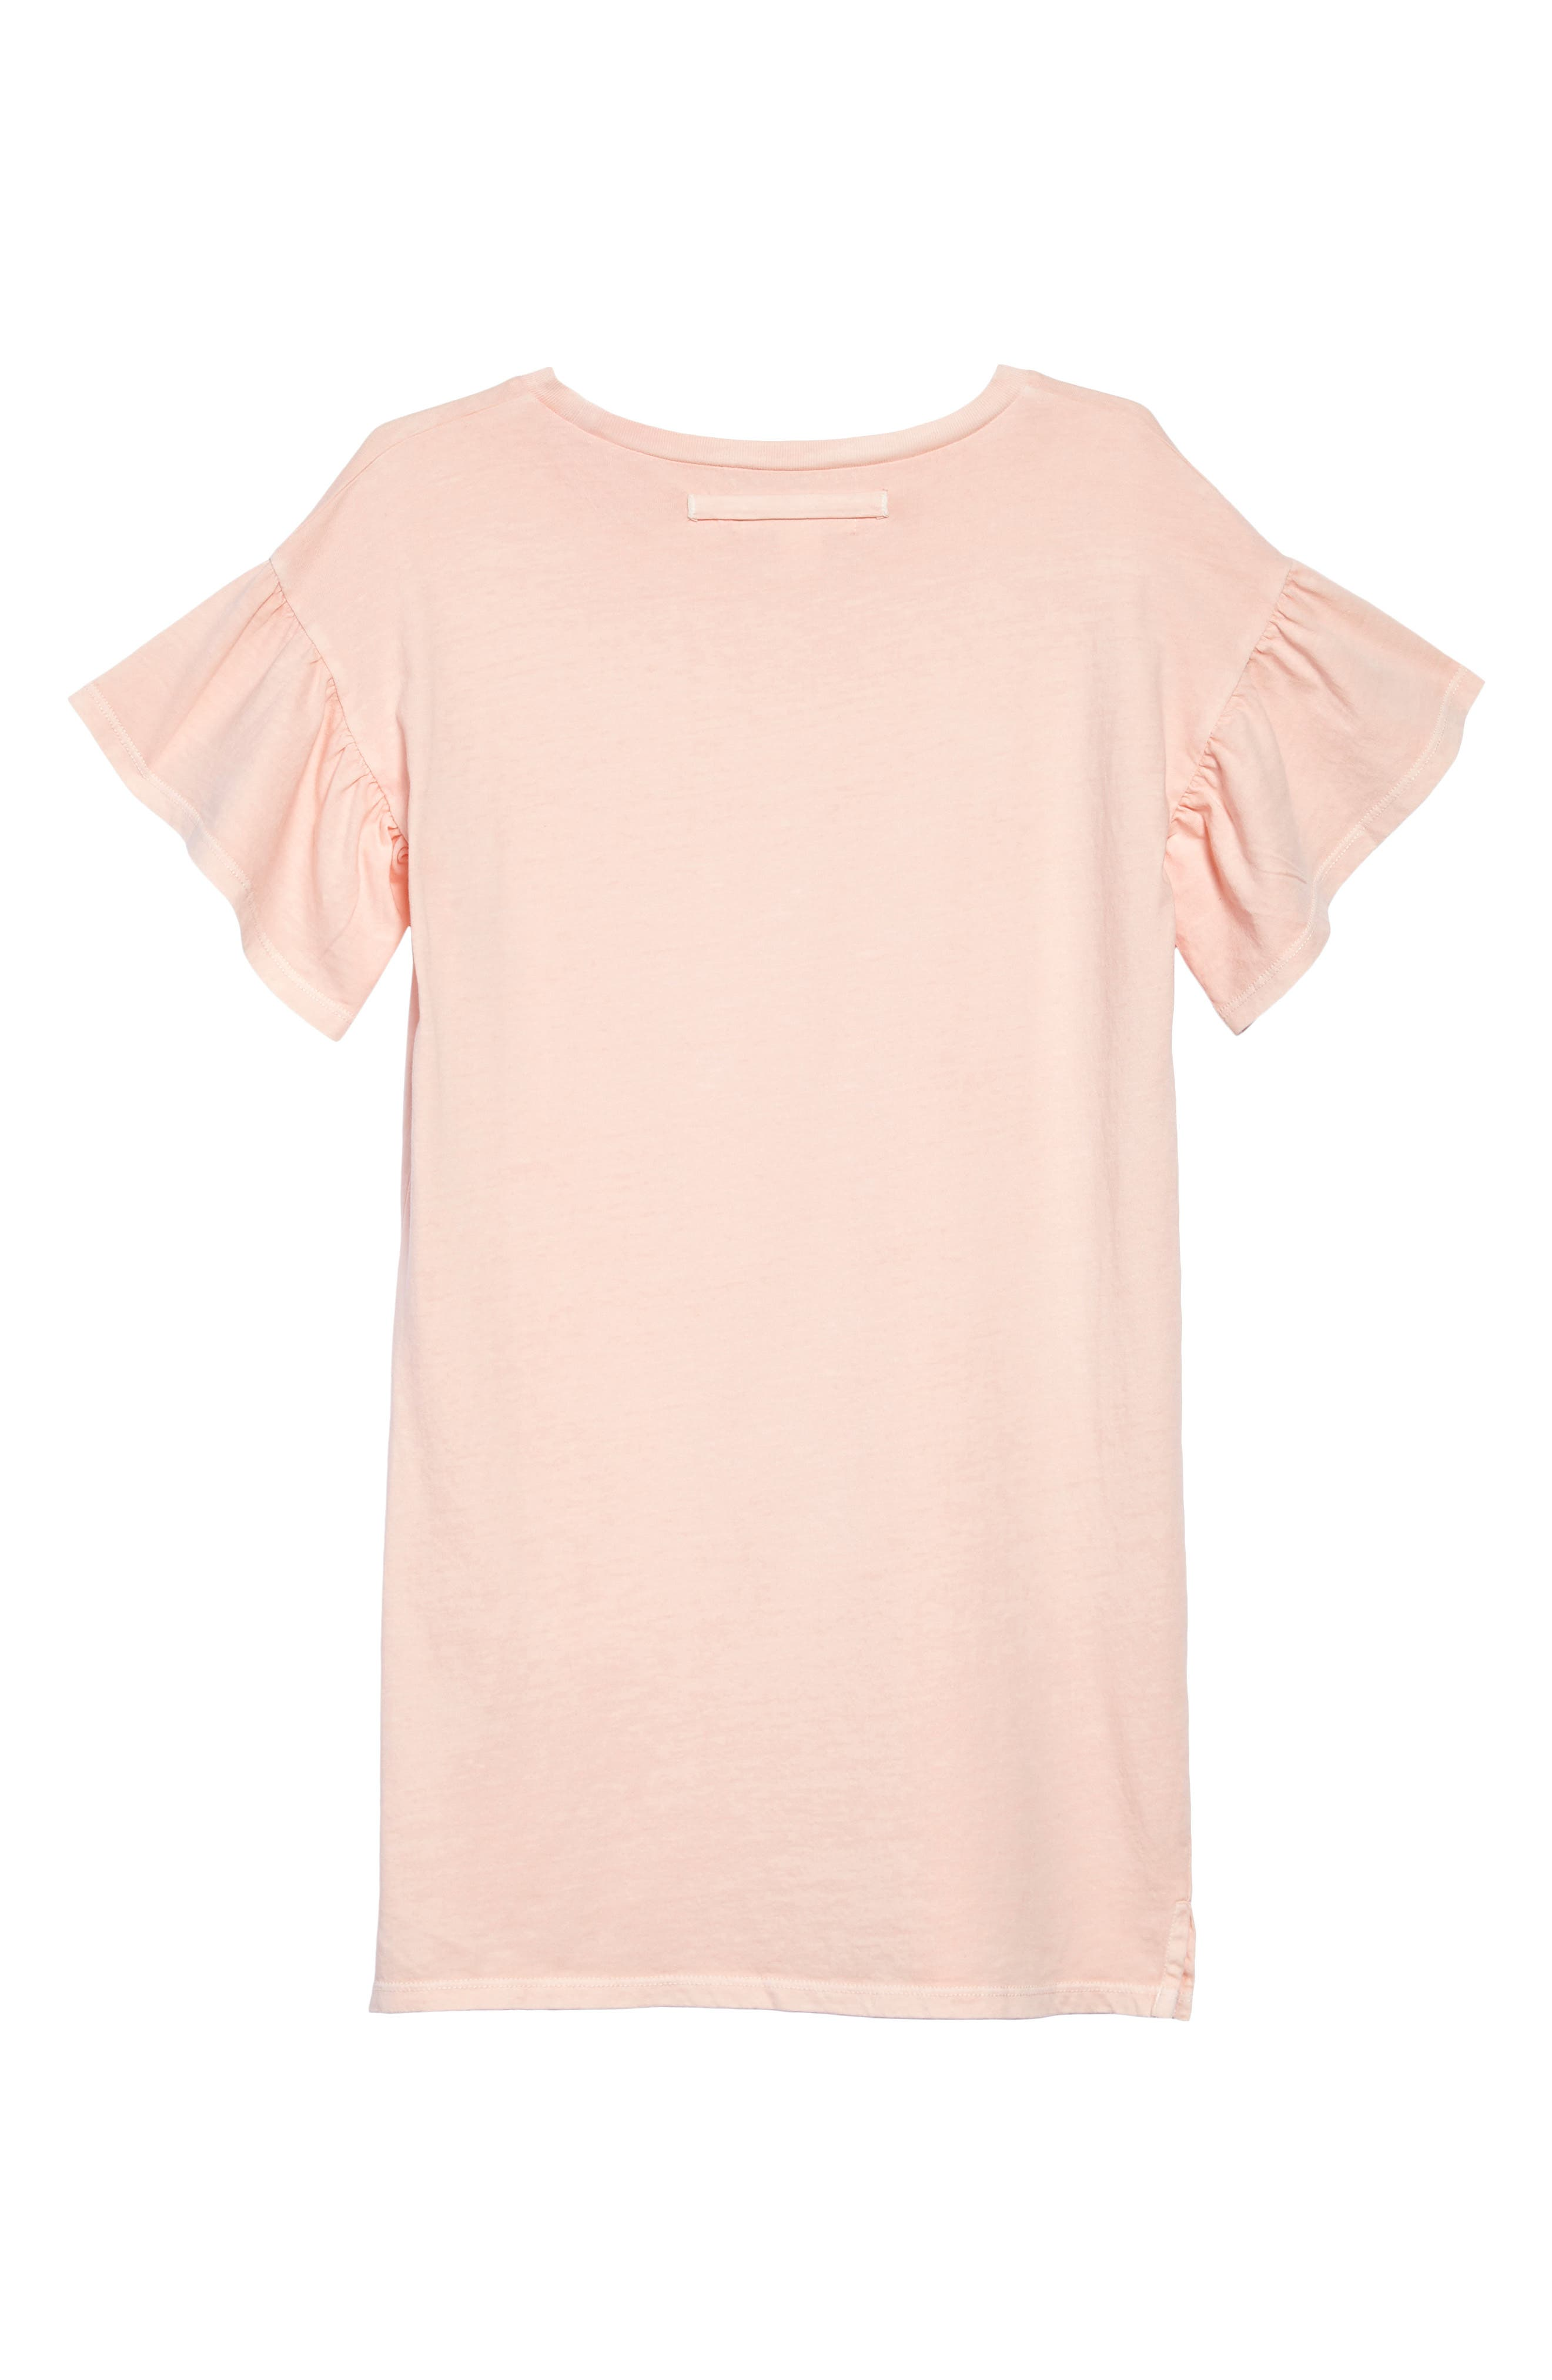 Ruffle Sleeve T-Shirt Dress,                             Alternate thumbnail 2, color,                             Pink Glow